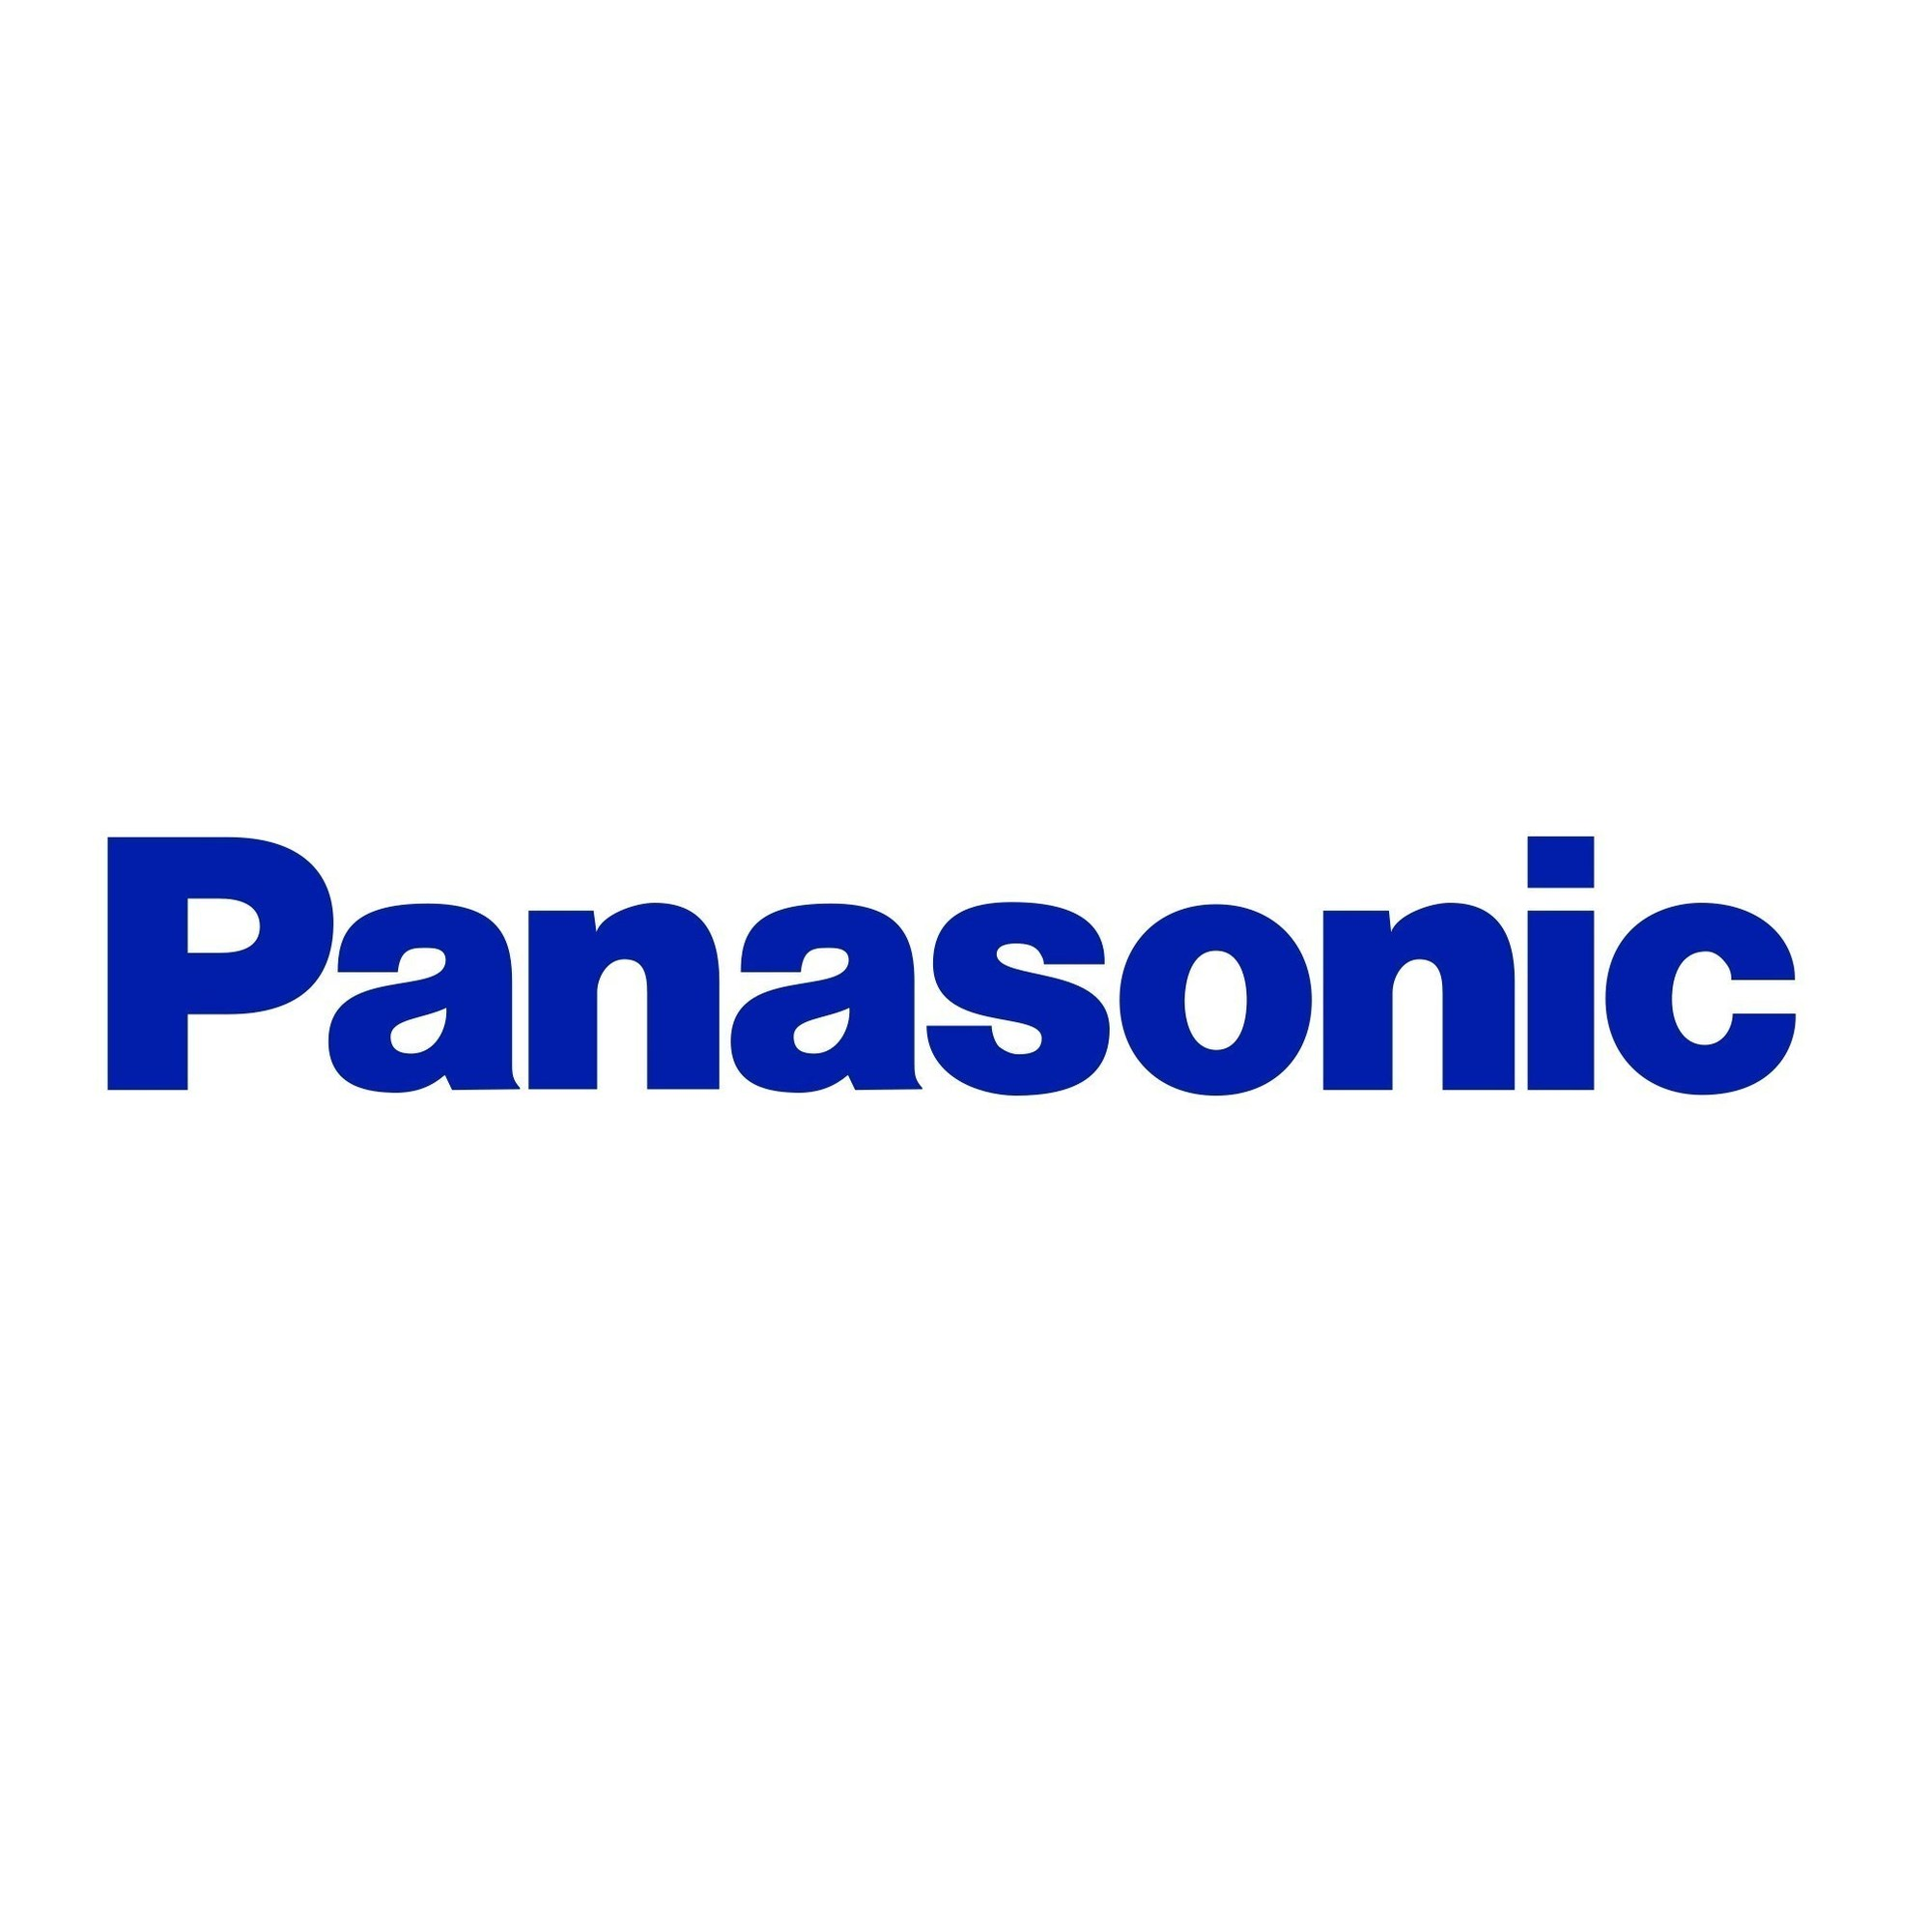 Panasonic Solar and Enphase Energy Announce Availability Date of High-Efficiency AC Modules